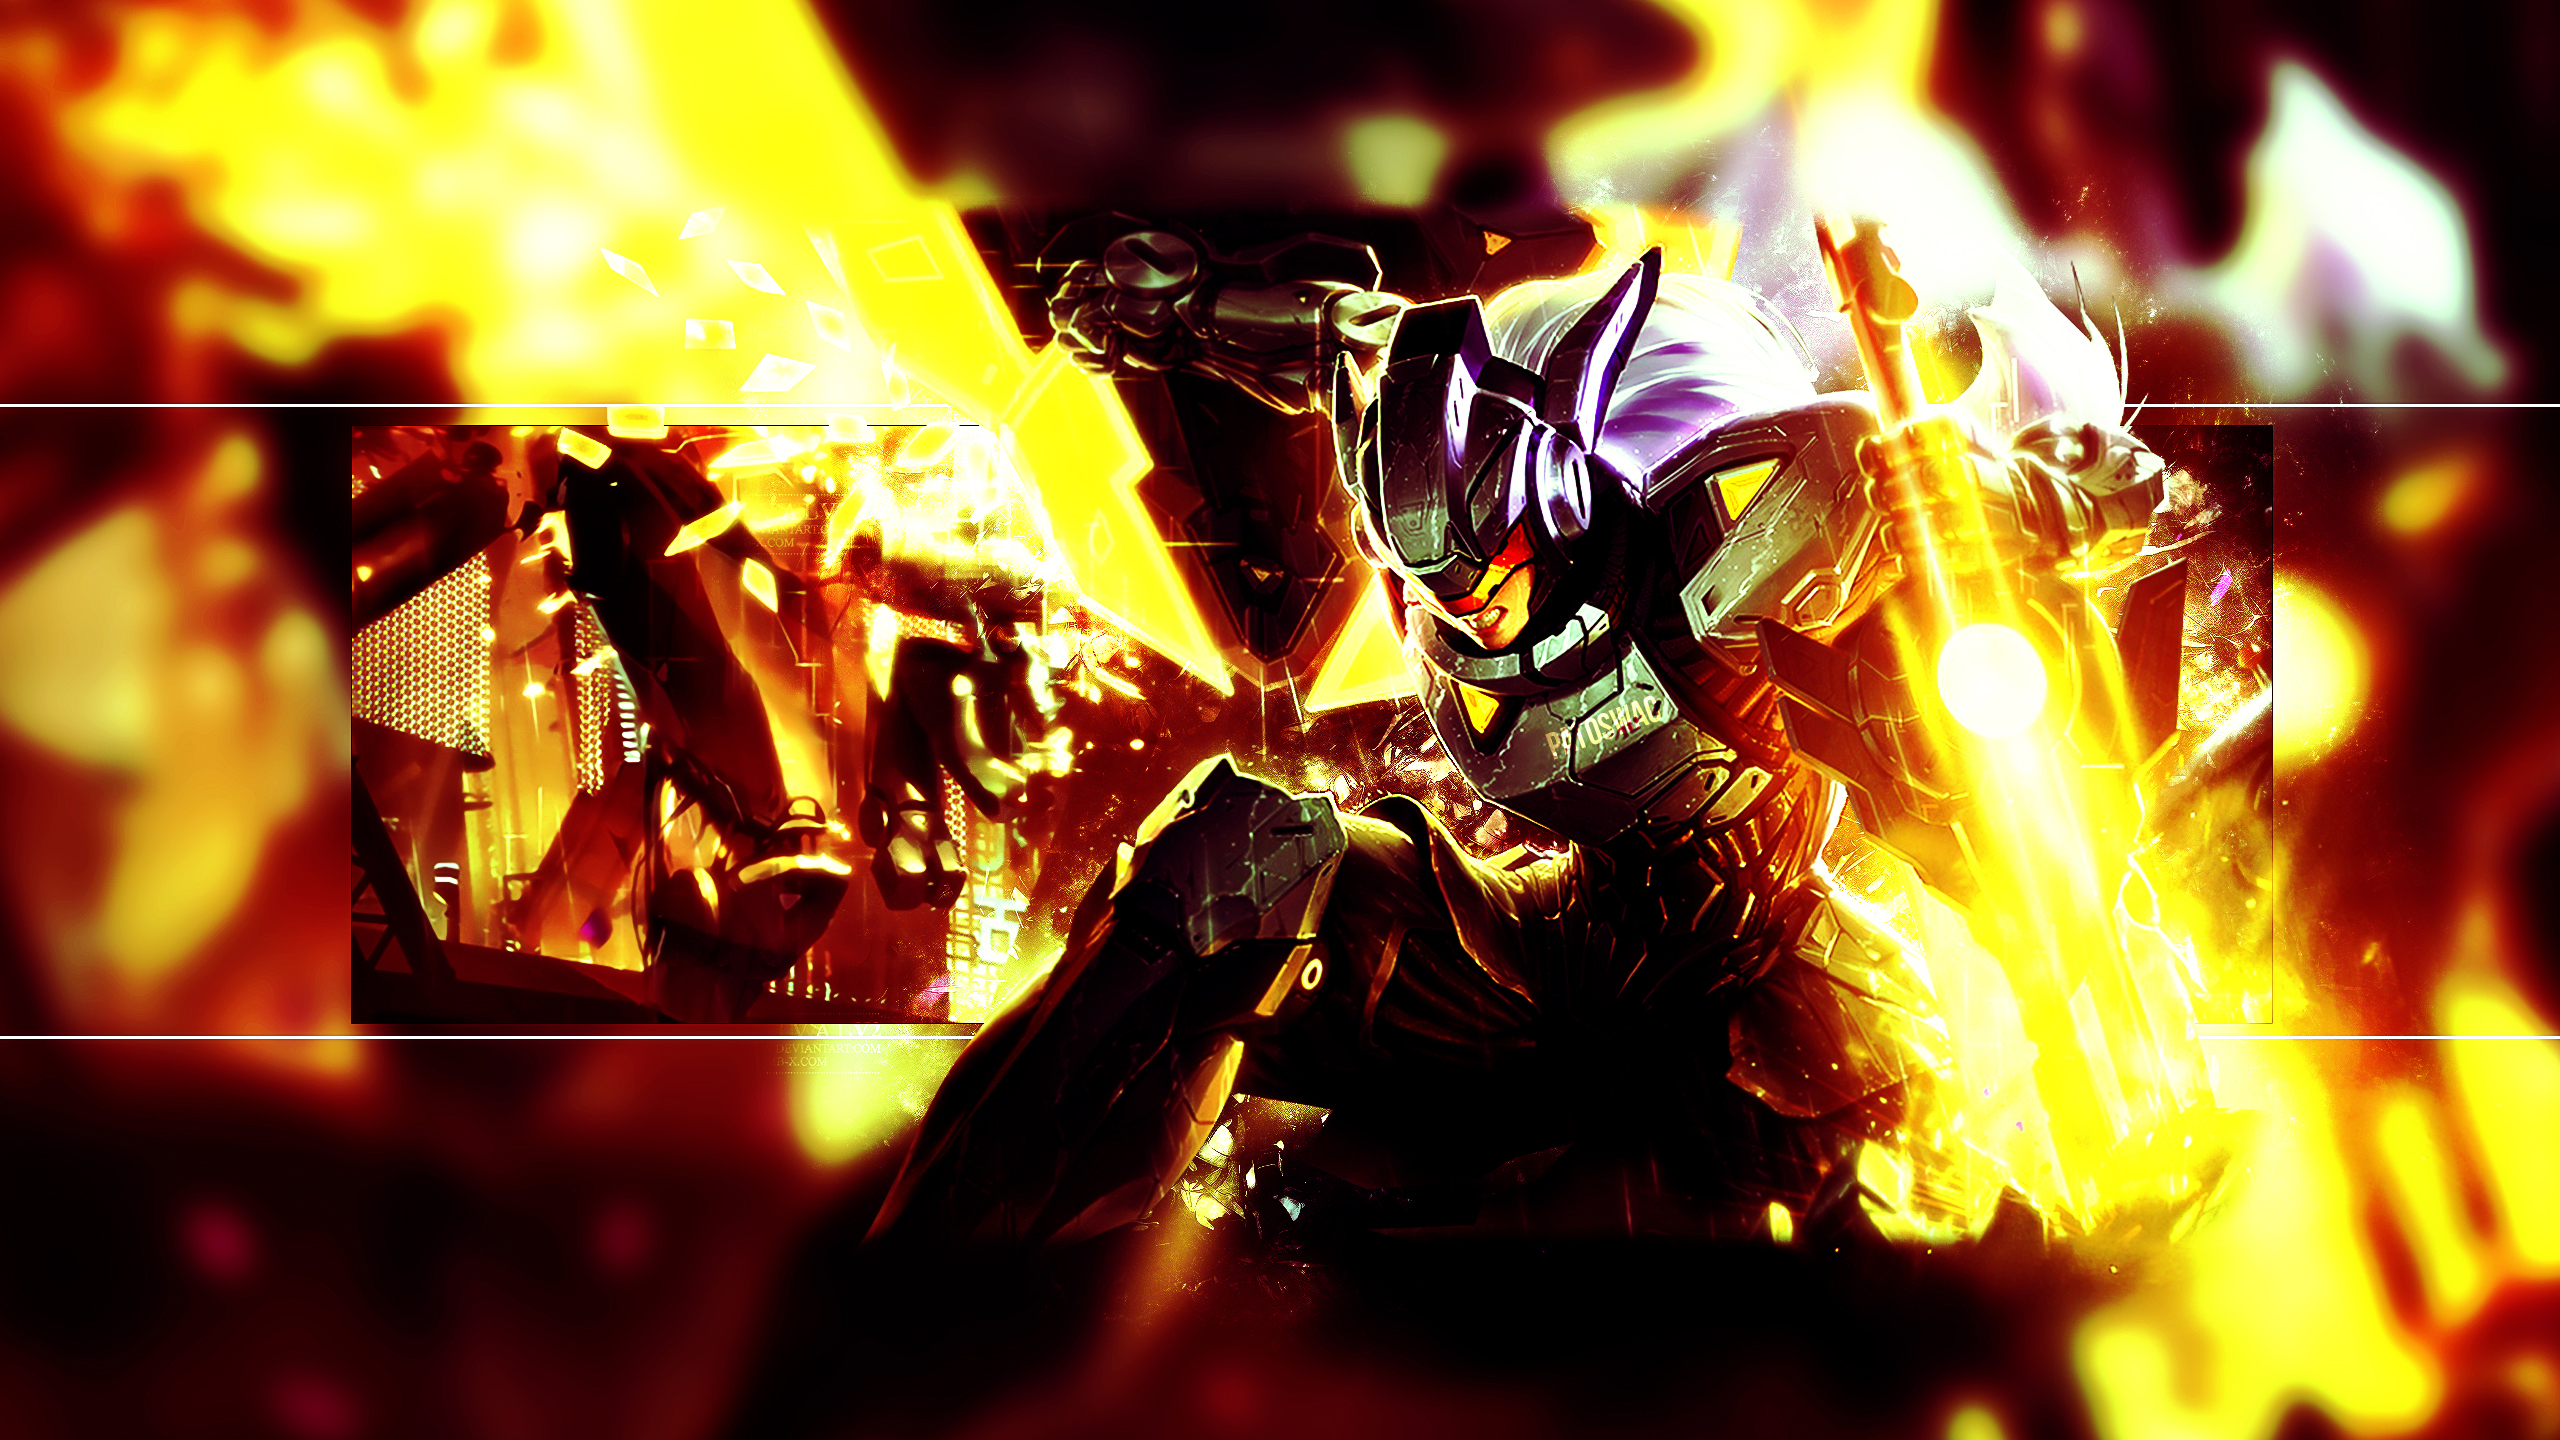 Leona Wallpaper League Of Legends By Patoswag On Deviantart